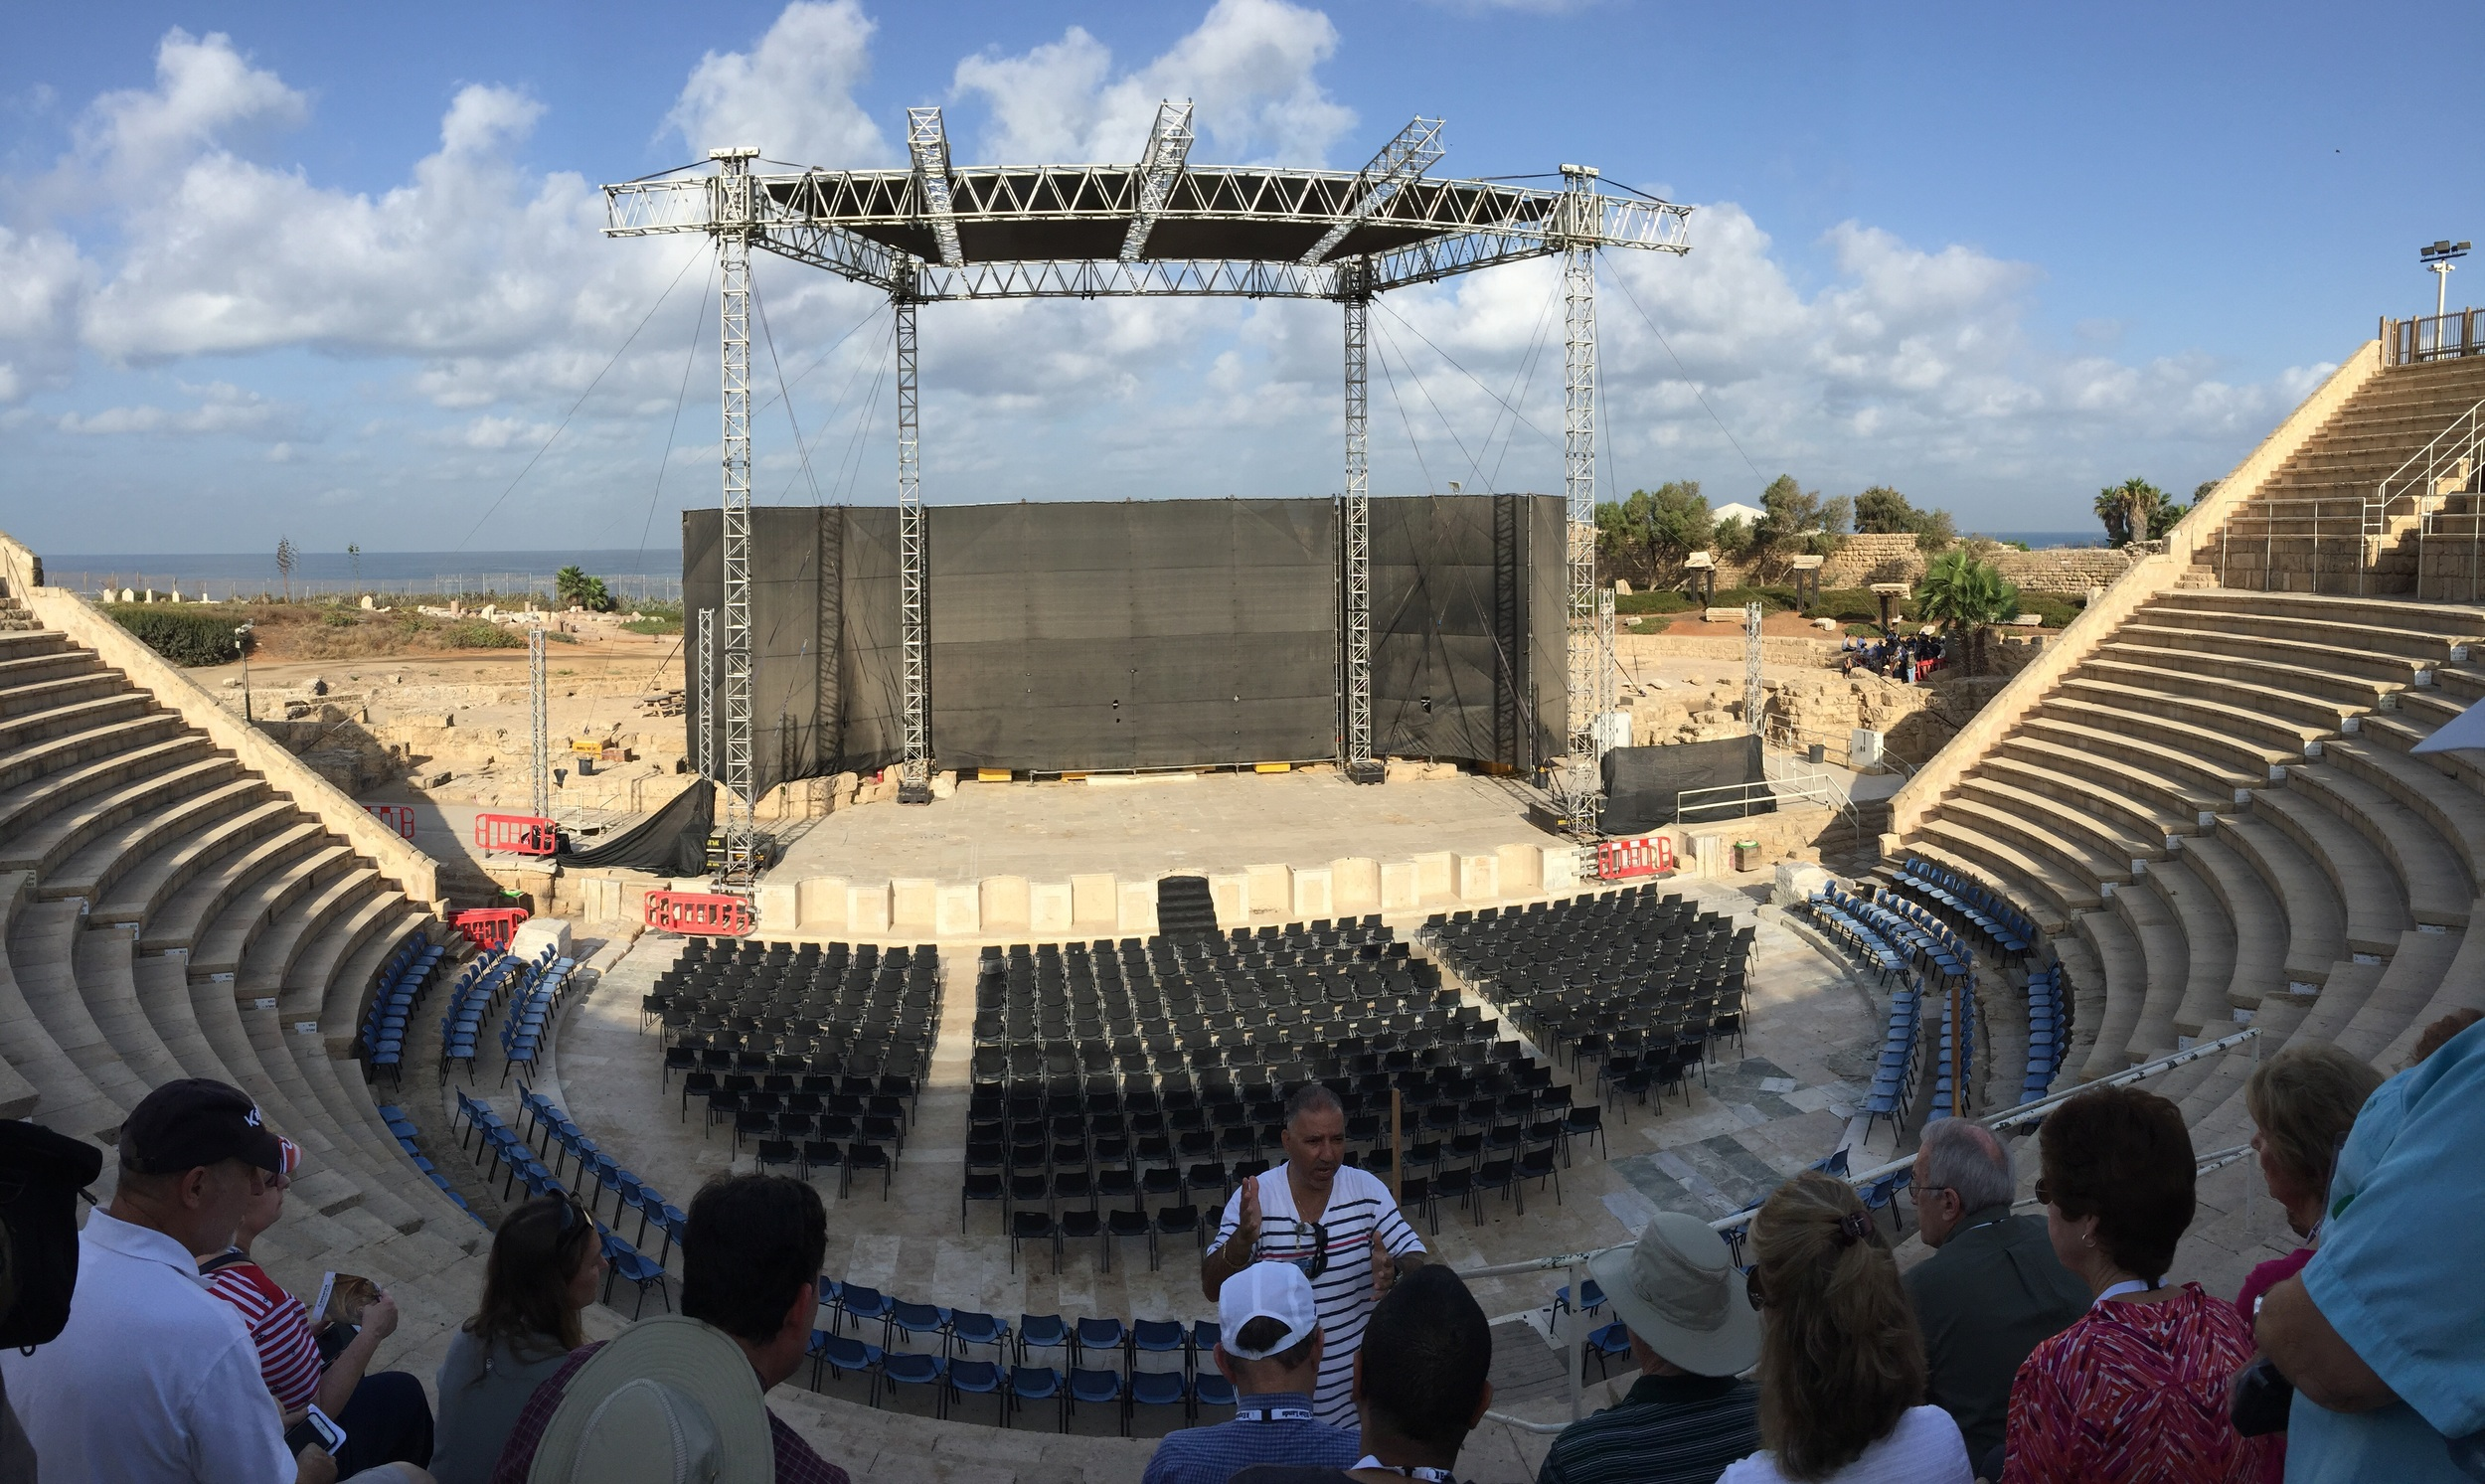 Gus, our tour guide, explained the history and science of the amphiteater at Caesarea.